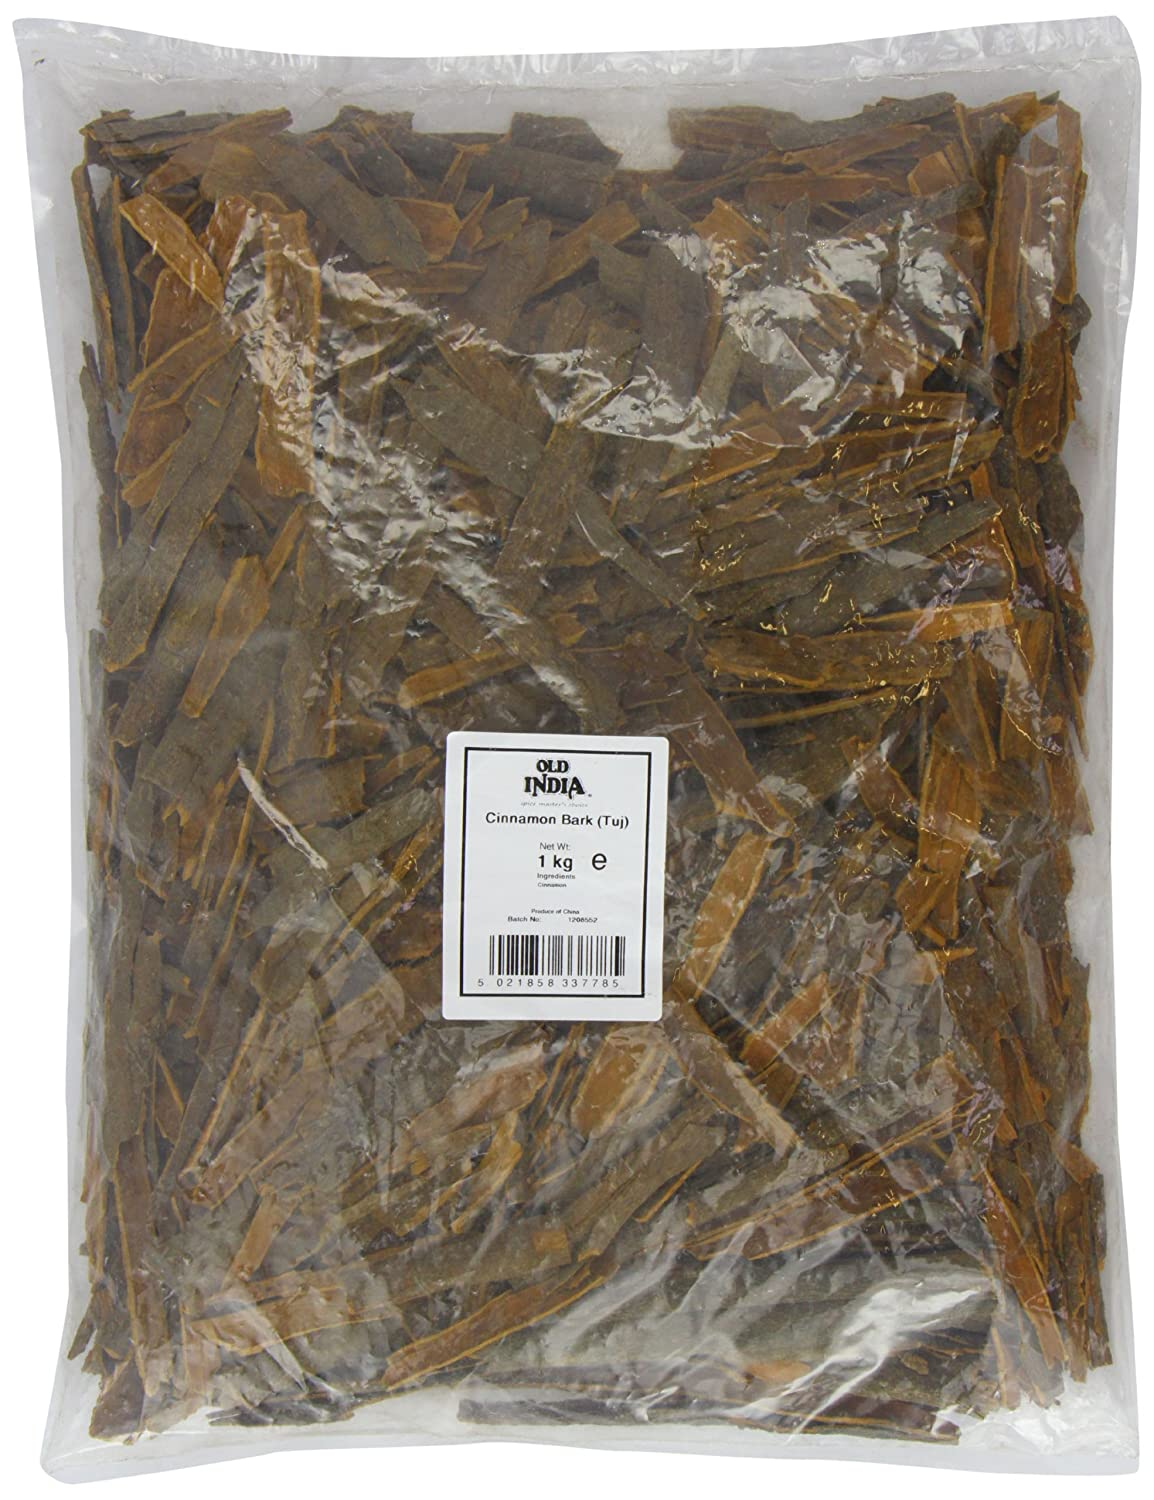 Old India Cinnamon Mail order Large discharge sale cheap Bark 1 Kg Tuj